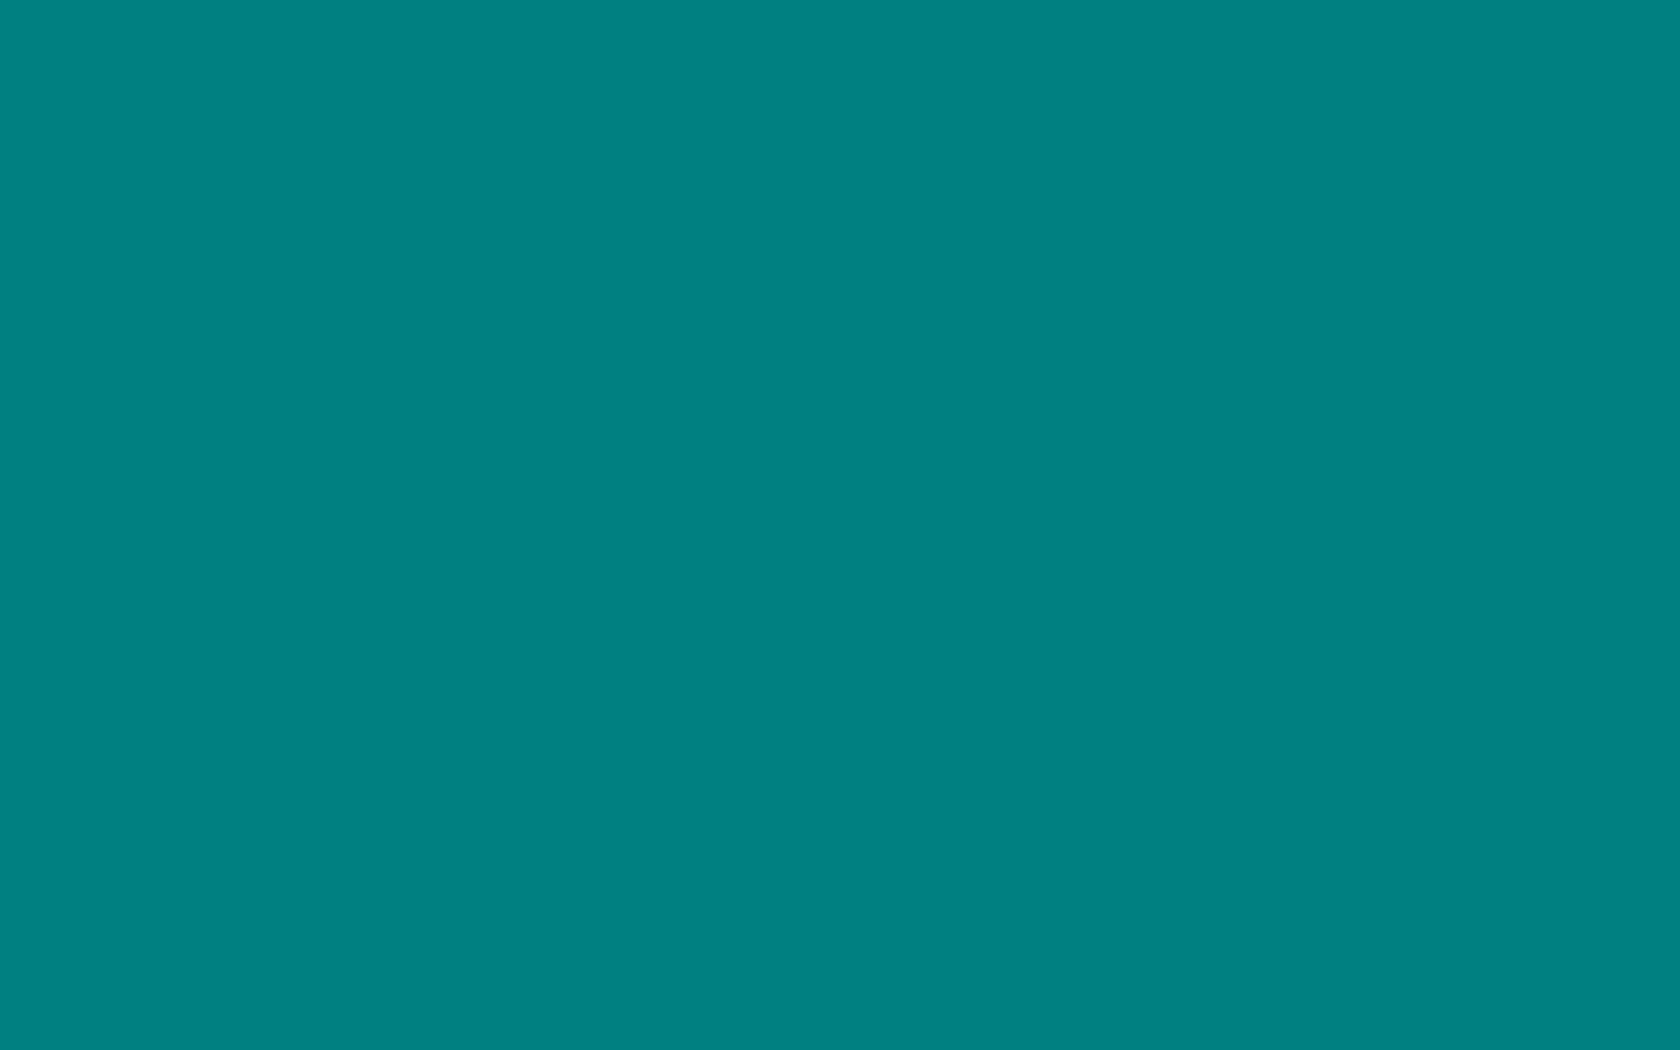 Teal Wallpaper With Quotes Teal Backgrounds Download Free Pixelstalk Net